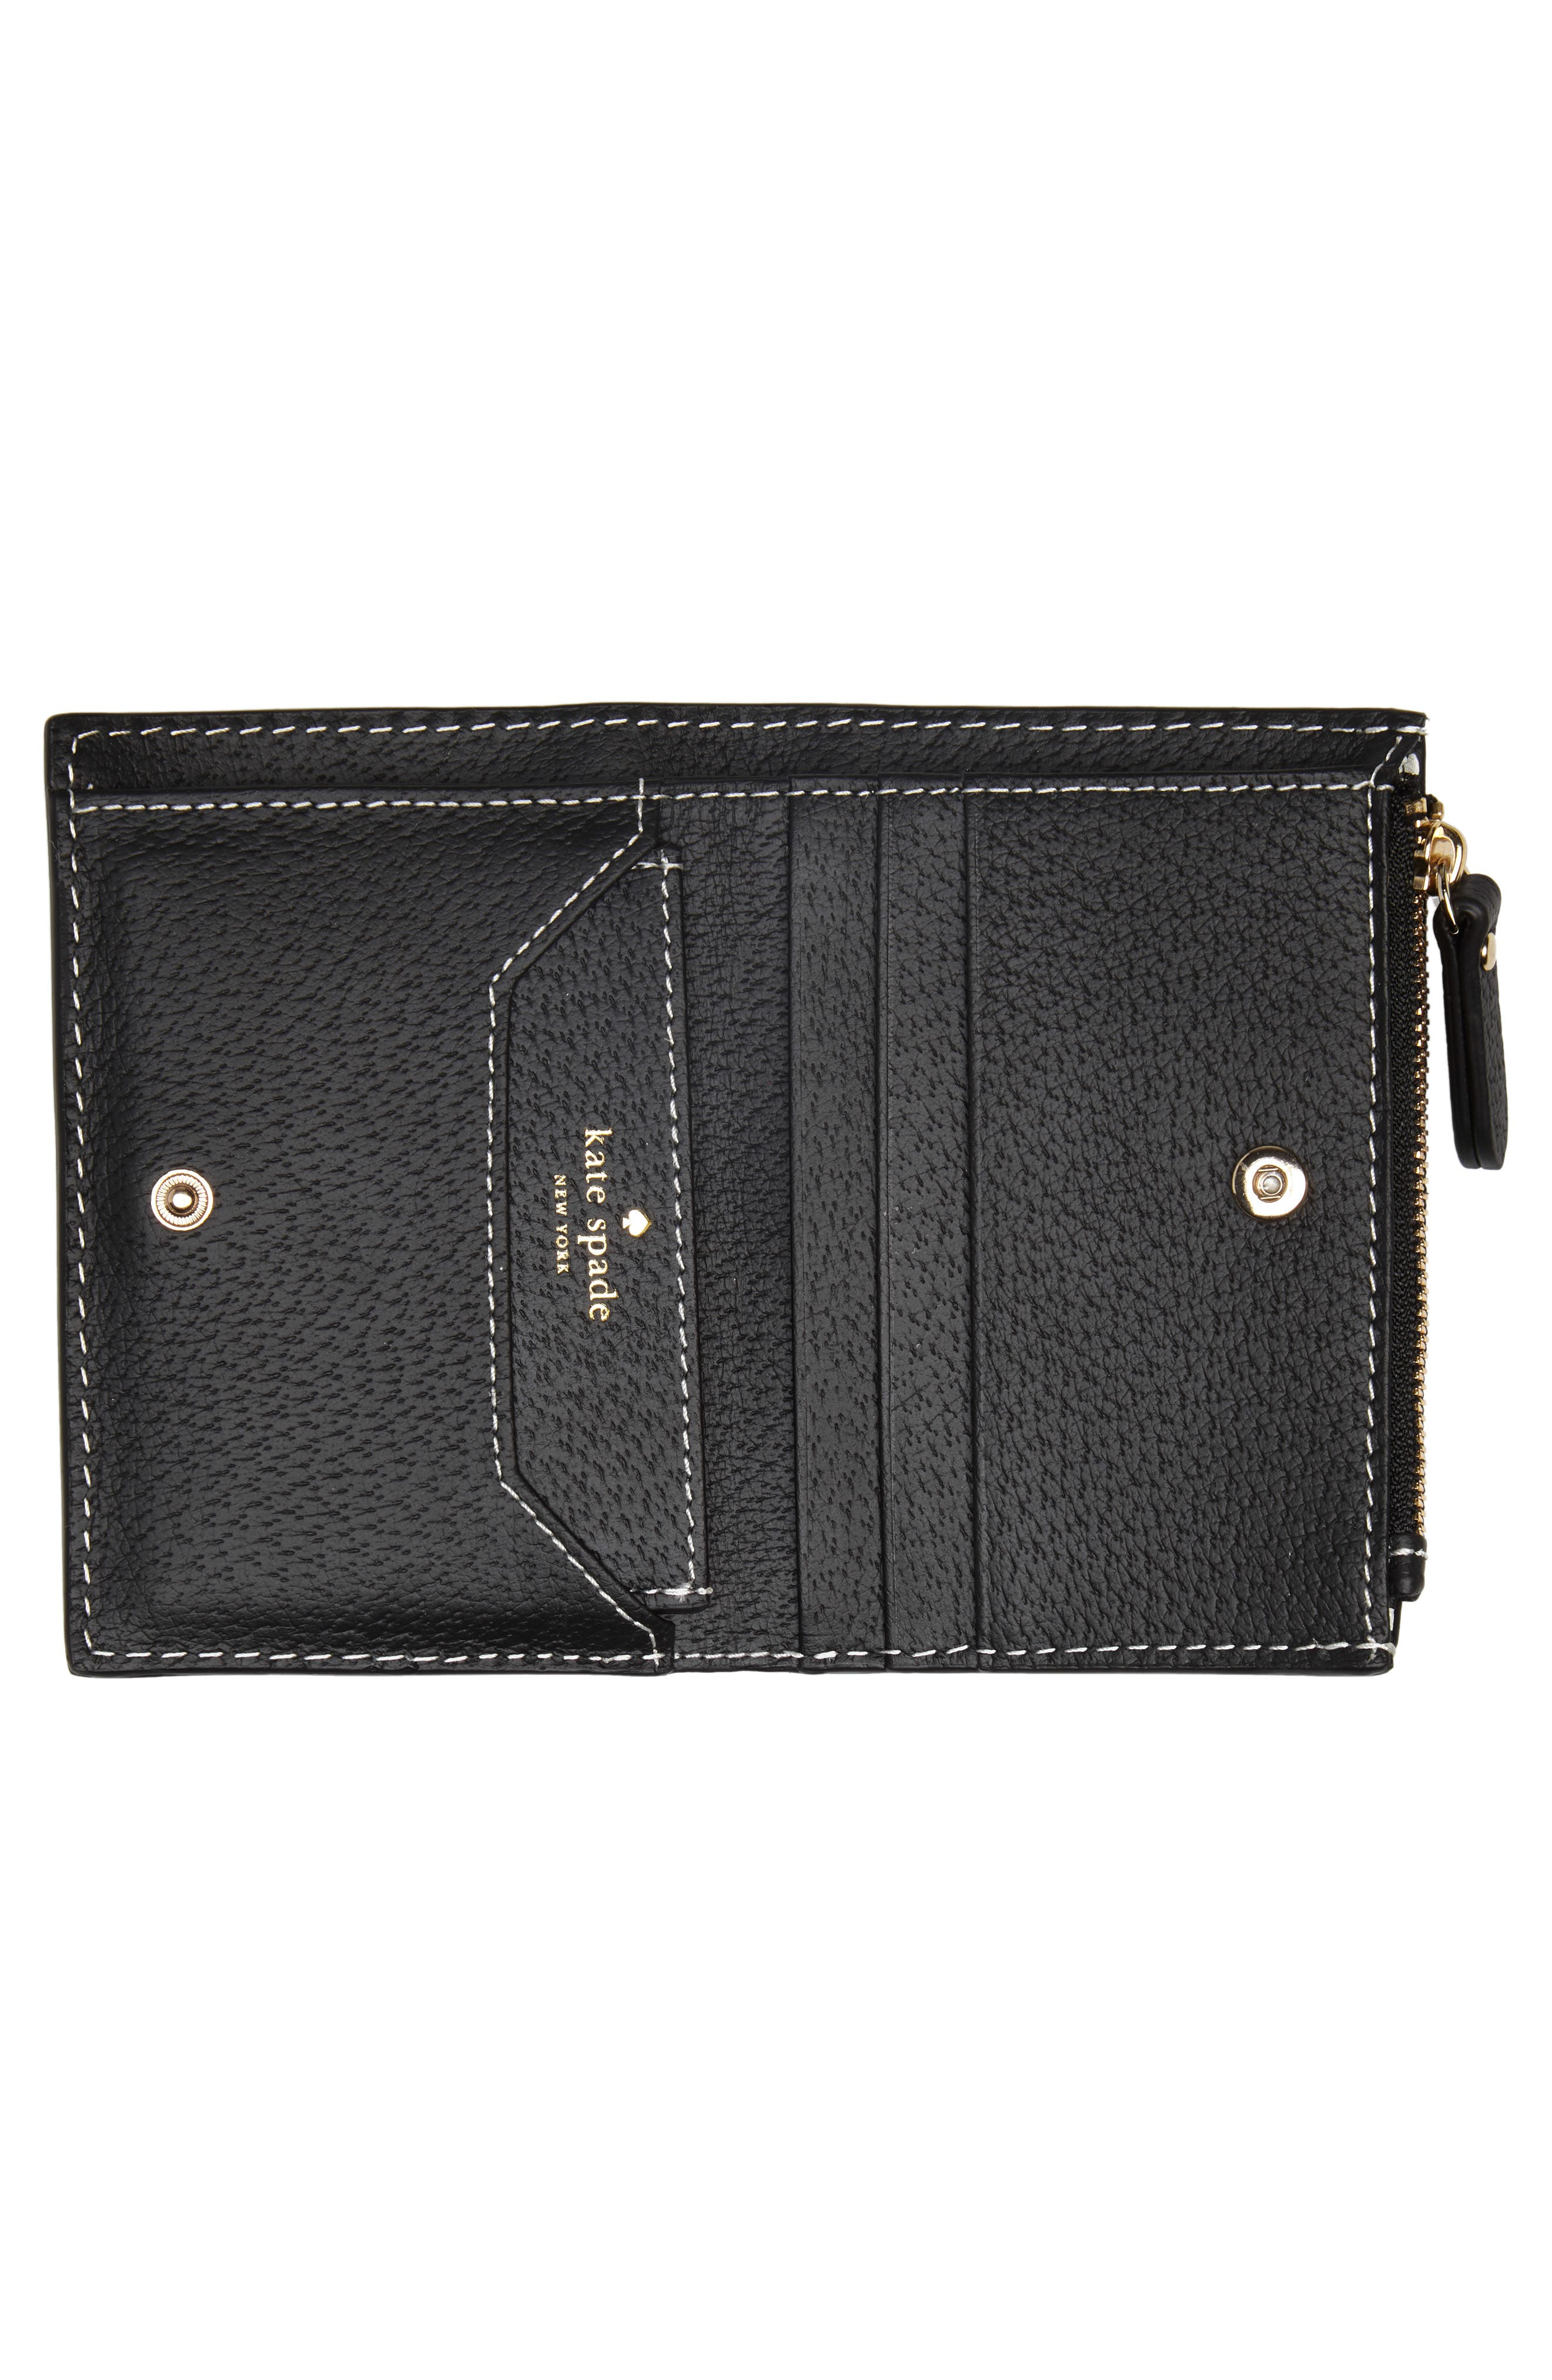 thompson street – abri leather wallet,                             Alternate thumbnail 2, color,                             001